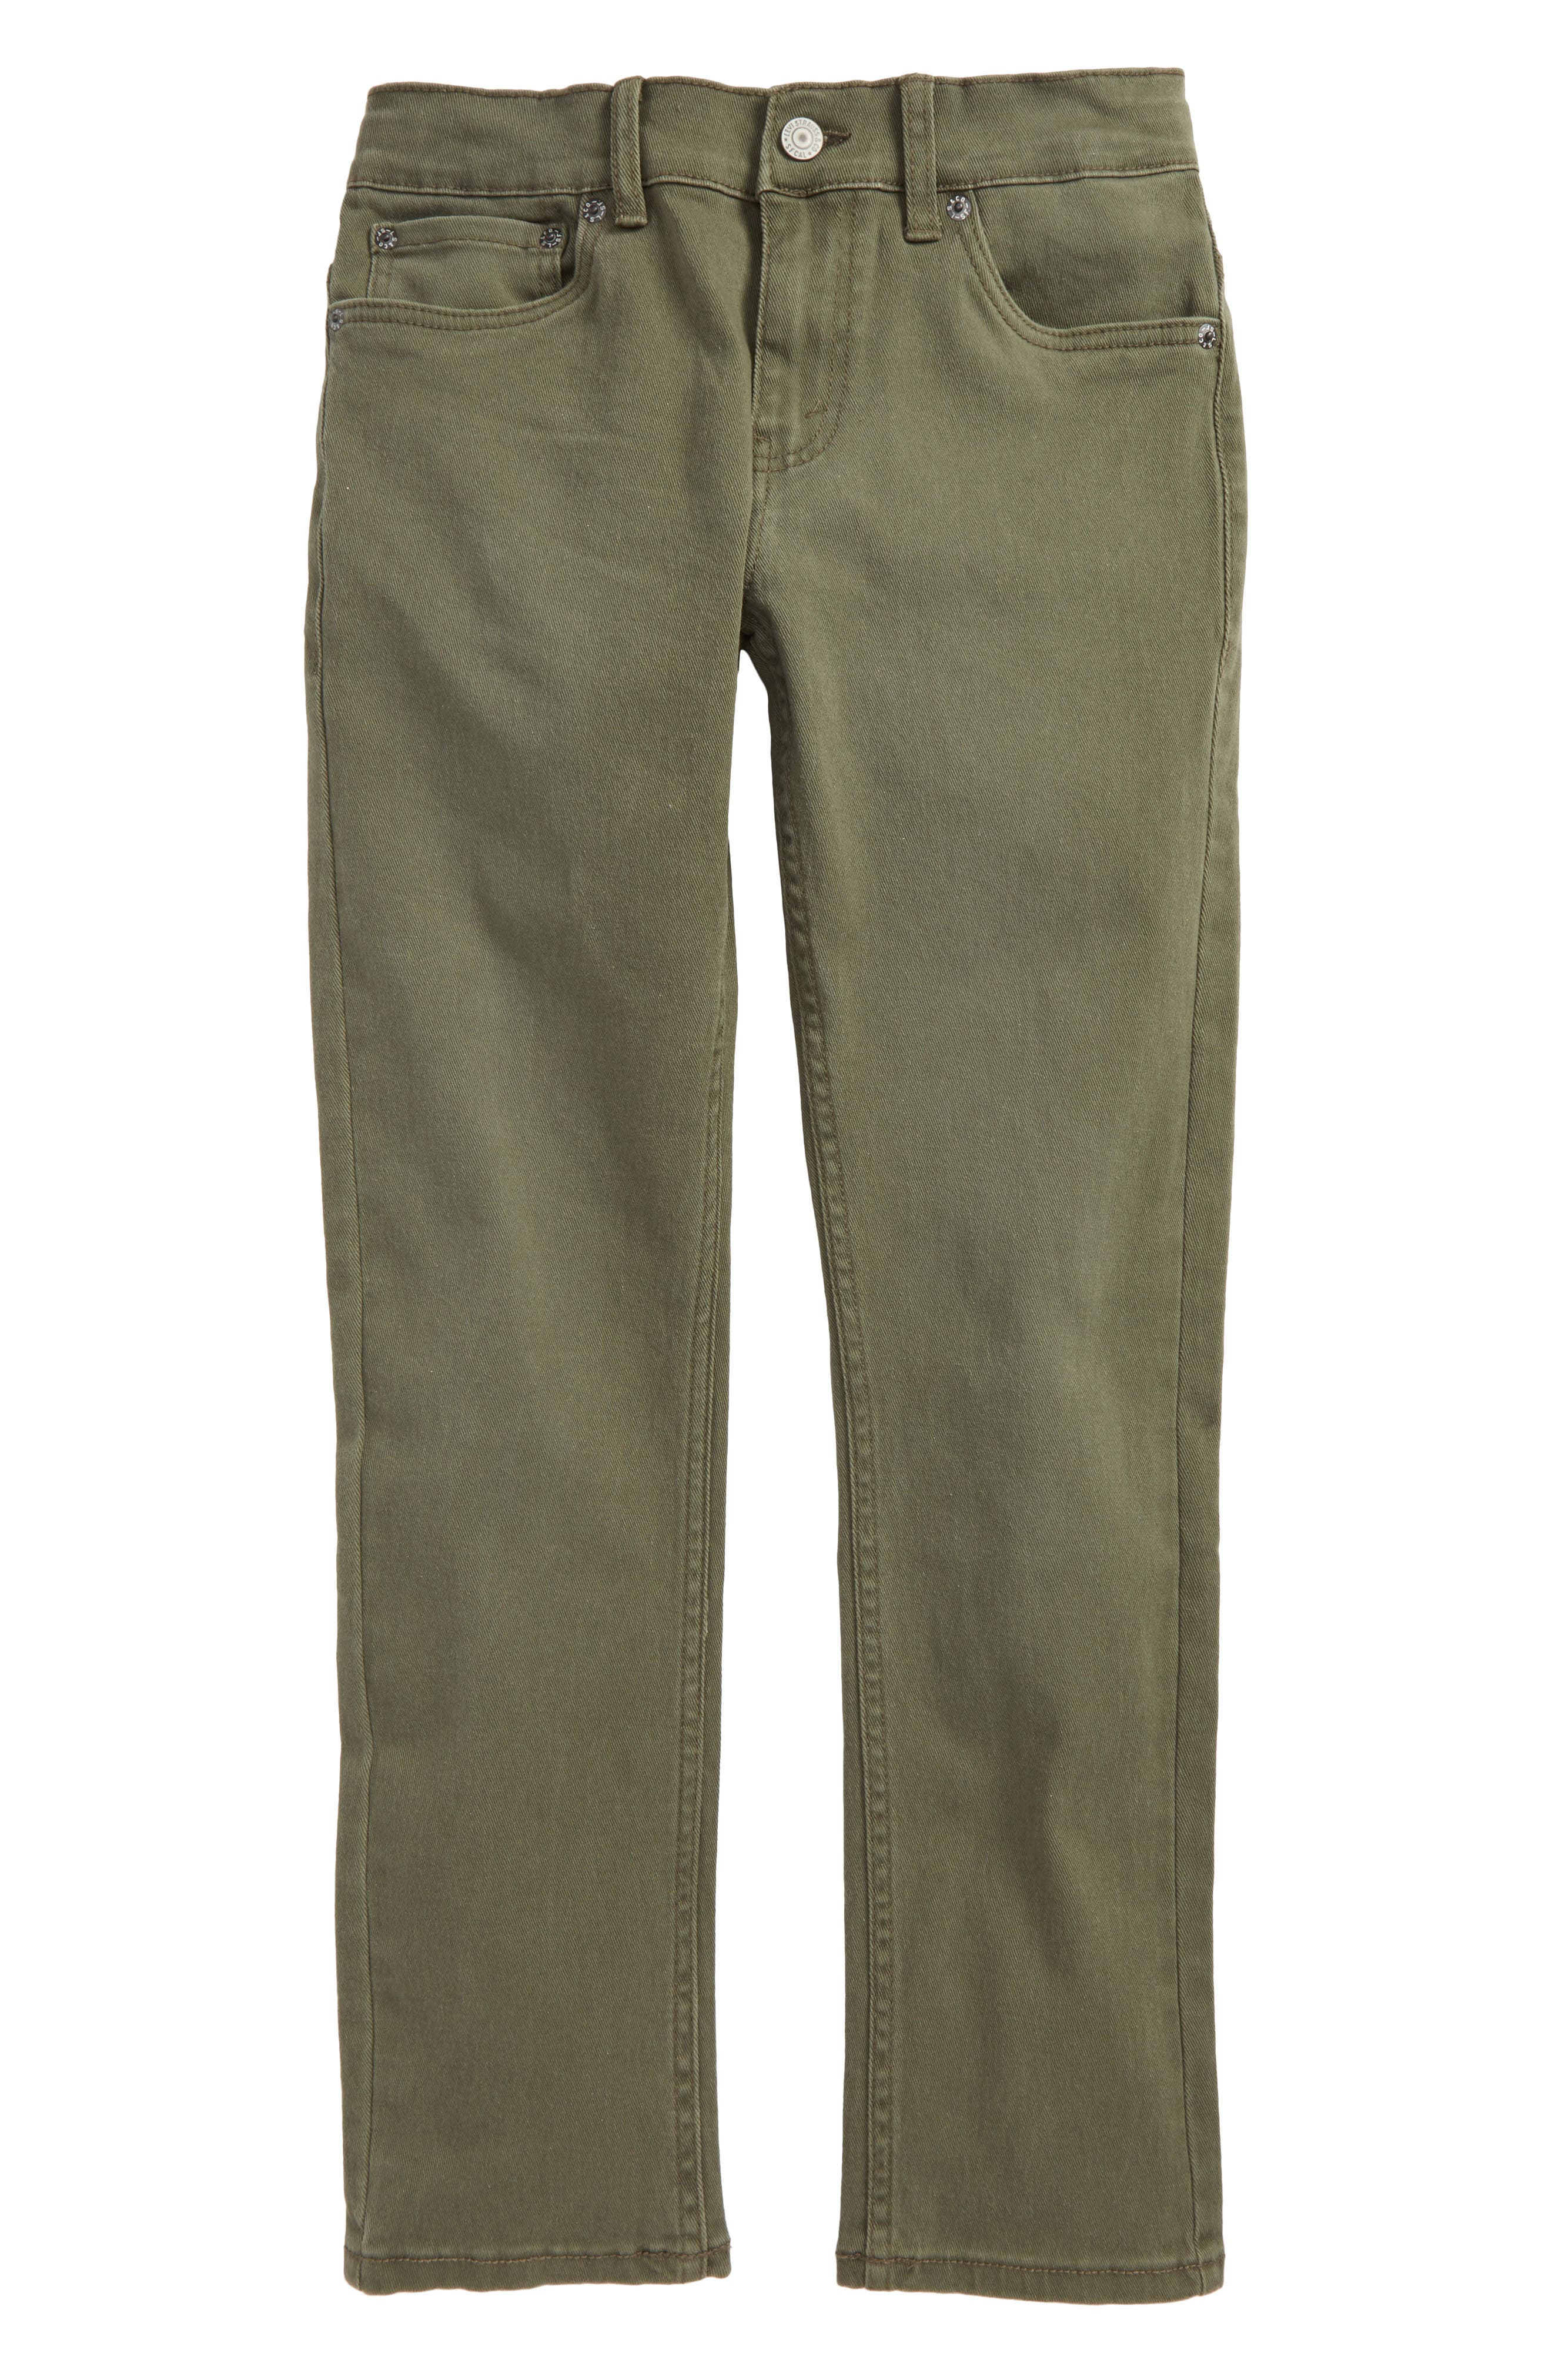 511 Slim Fit Jeans,                         Main,                         color, Olive Night